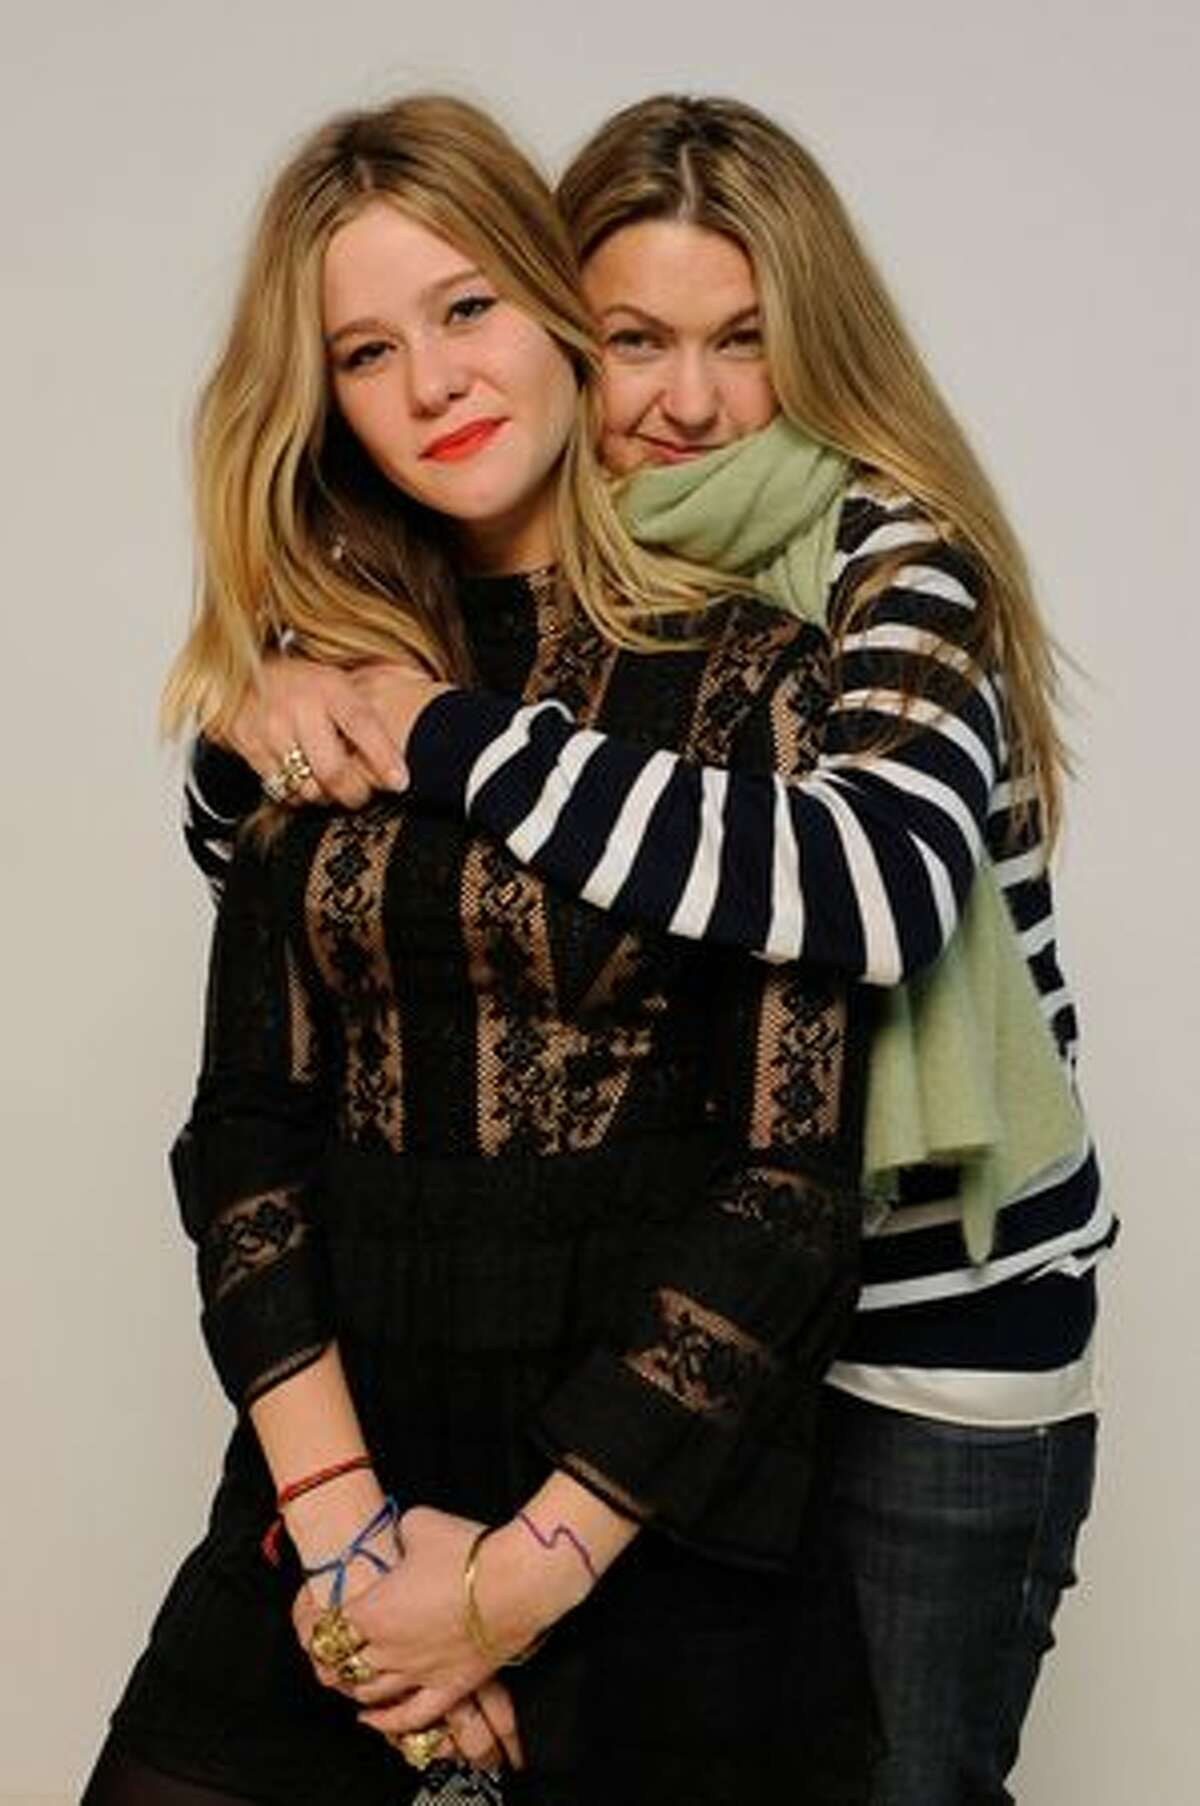 Actress Jazzy De Lisser and director Erica Dunton pose for a portrait during the 2011 Sundance Film Festival at The Samsung Galaxy Tab Lift on January 22, 2011 in Park City, Utah.